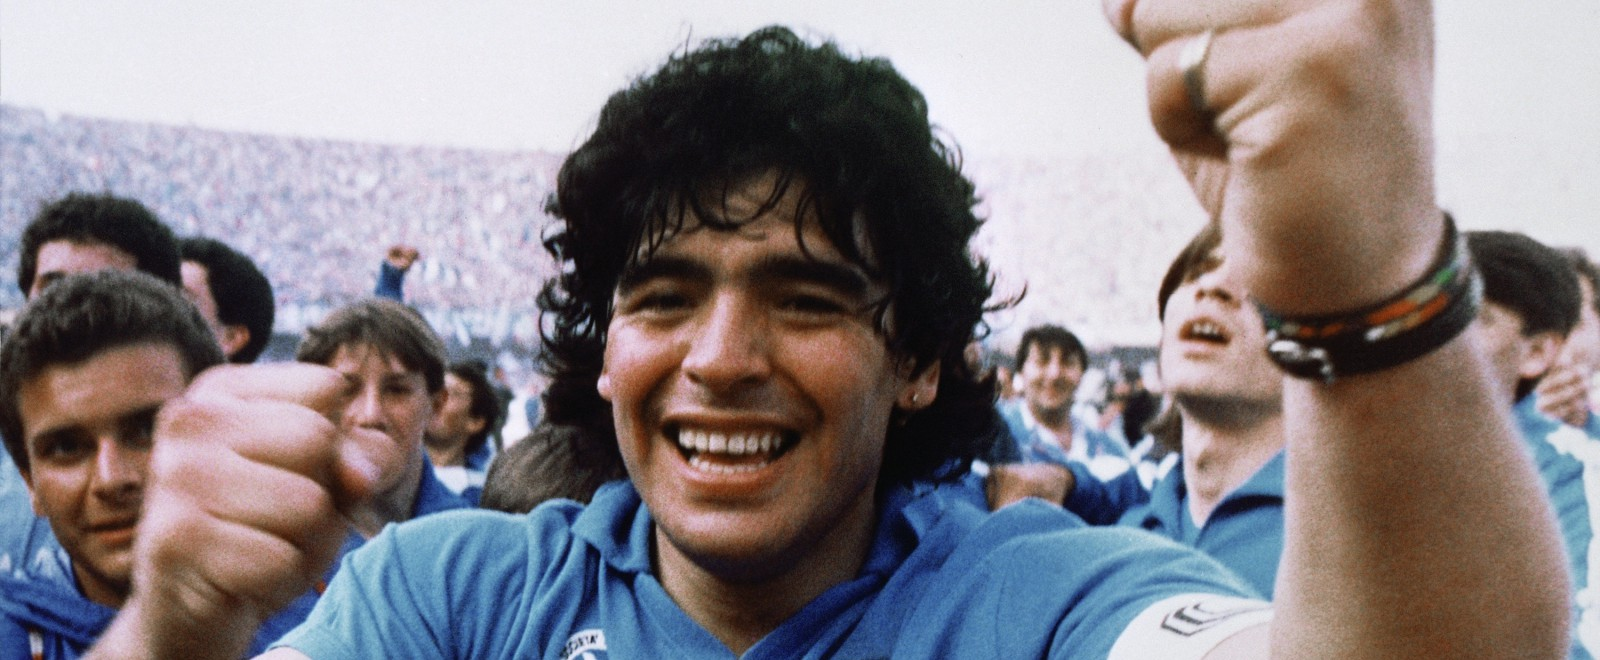 TRAILER: This HBO Documentary Chronicles the Darkness & Glory of Soccer Legend Diego Maradona